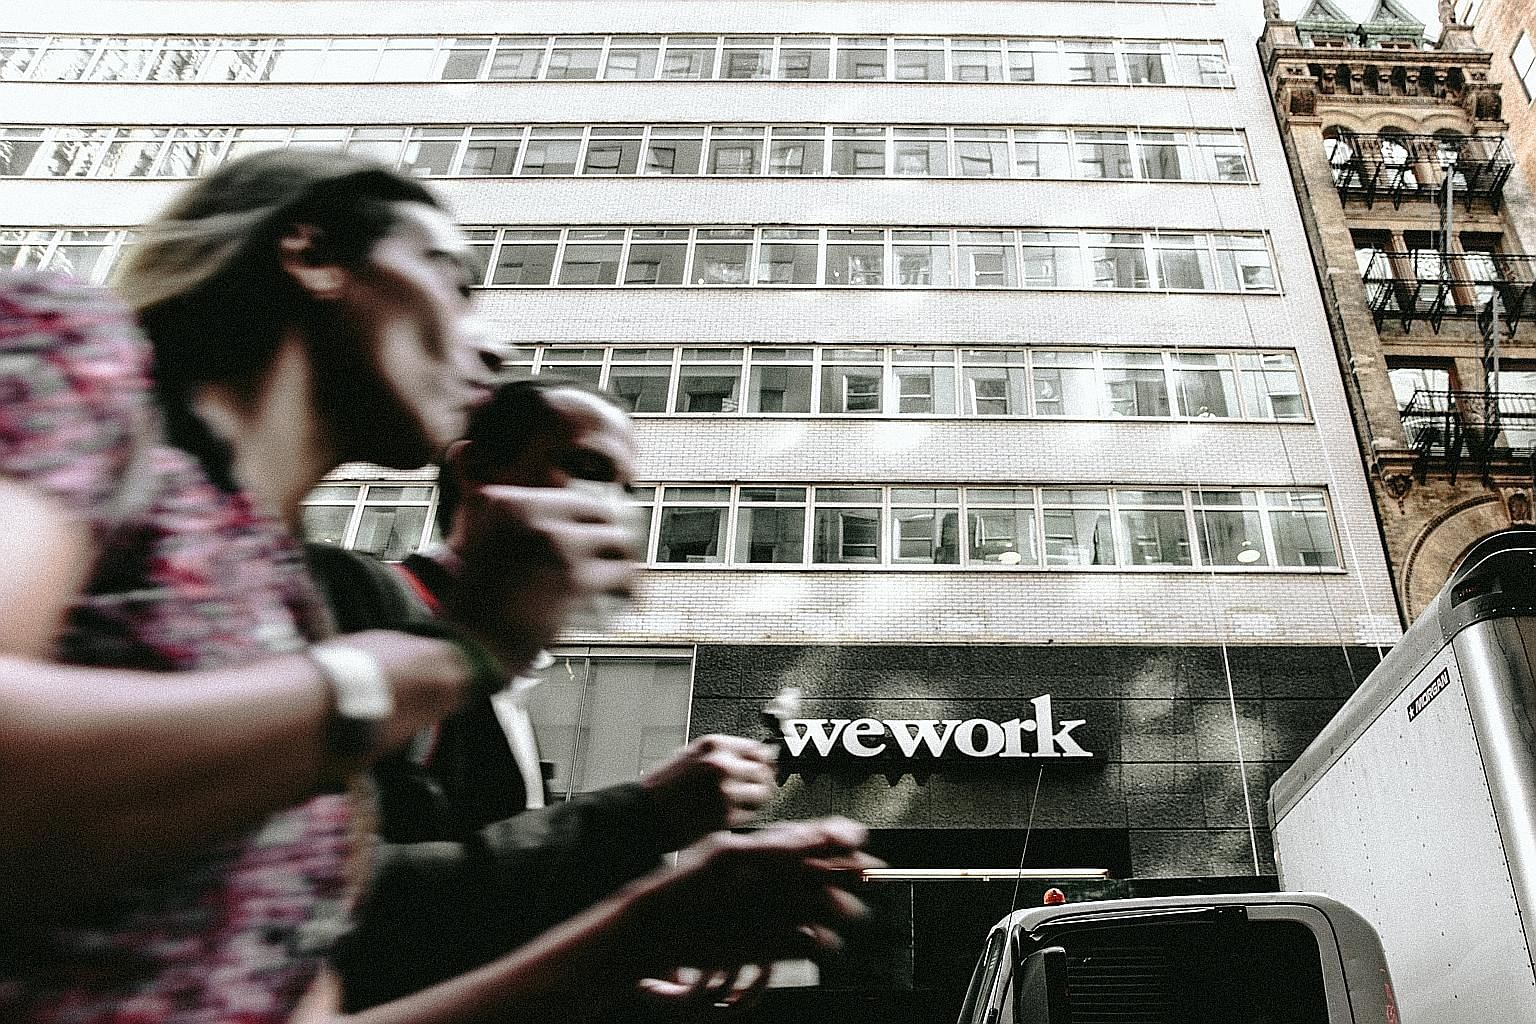 A WeWork location near New York City's Times Square. WeWork was recently reported to be considering a rescue valuation of US$8 billion (S$10.9 billion) following a failed initial public offering, a whopping US$39 billion discount to its last valuation in